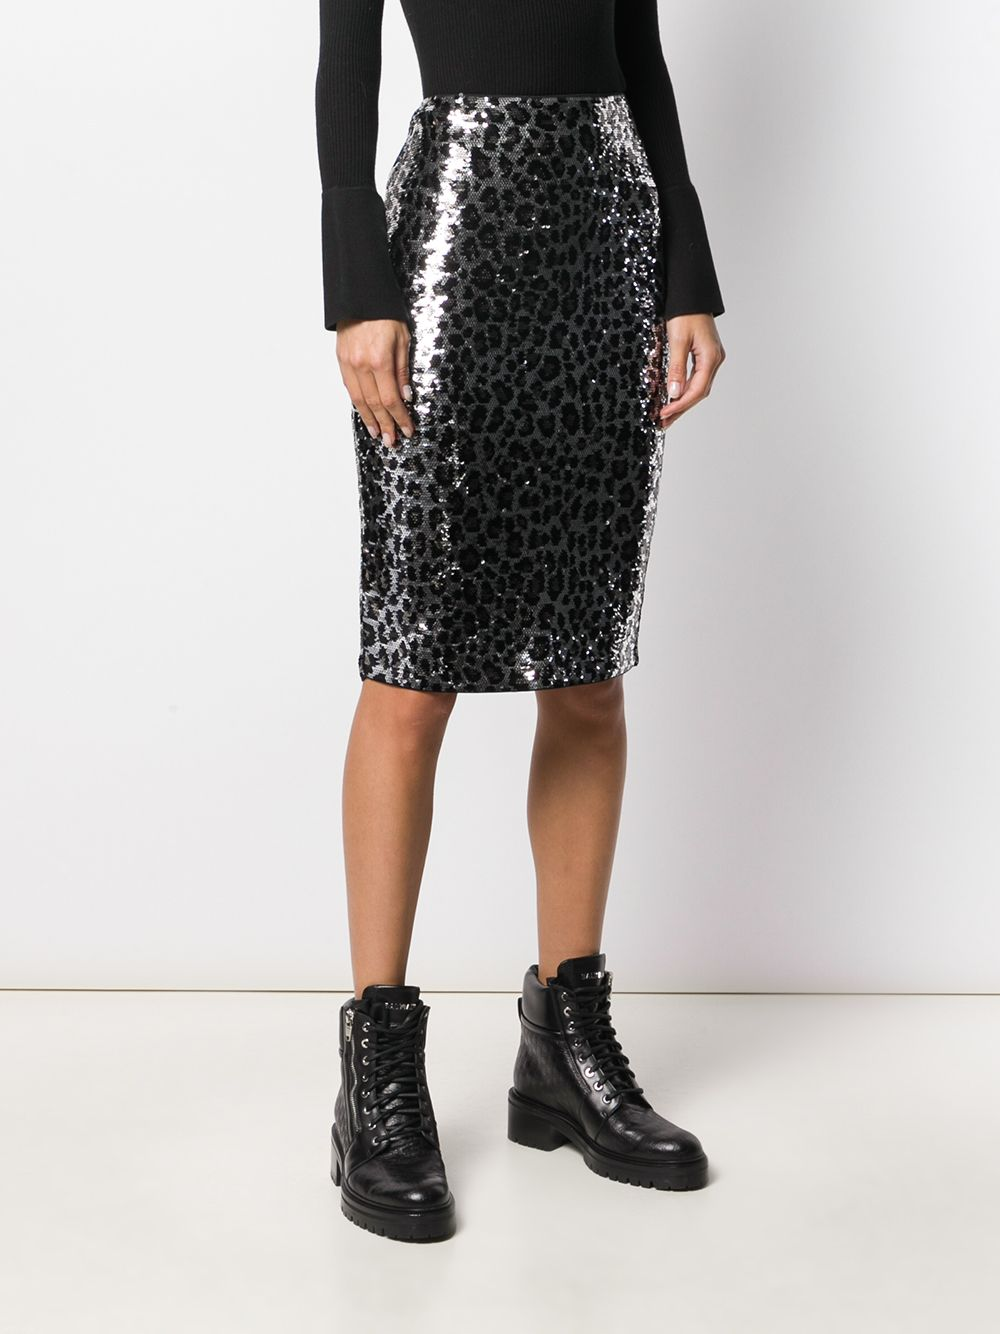 Immagine di Michael Kors | Animalier Skirt